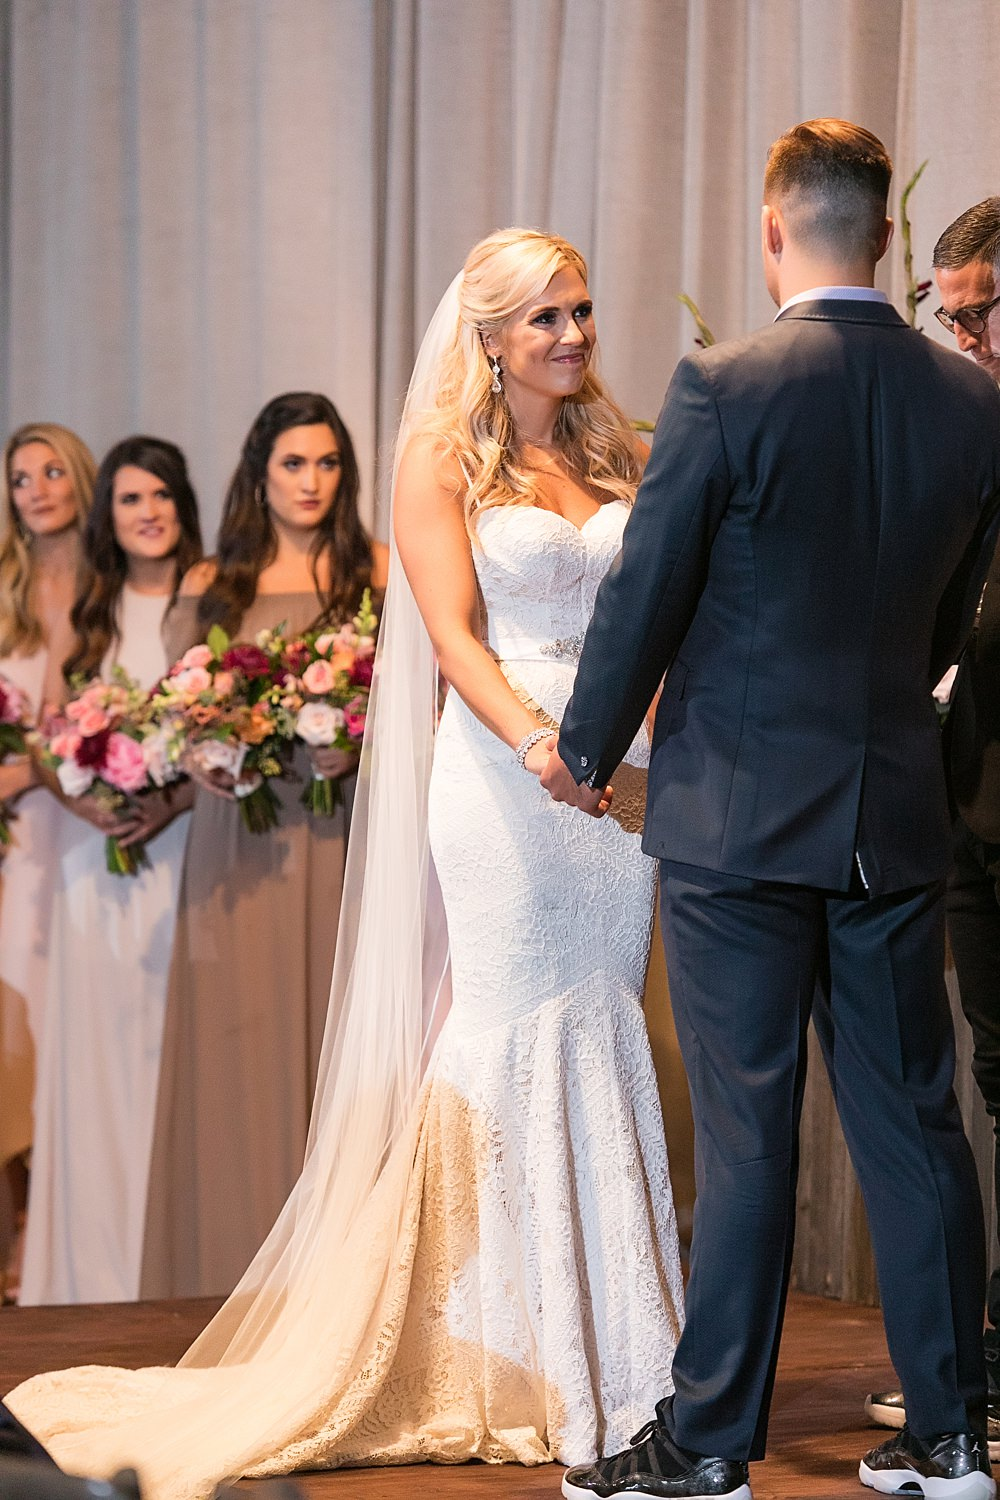 stave room wedding : l events : vue photography 0060